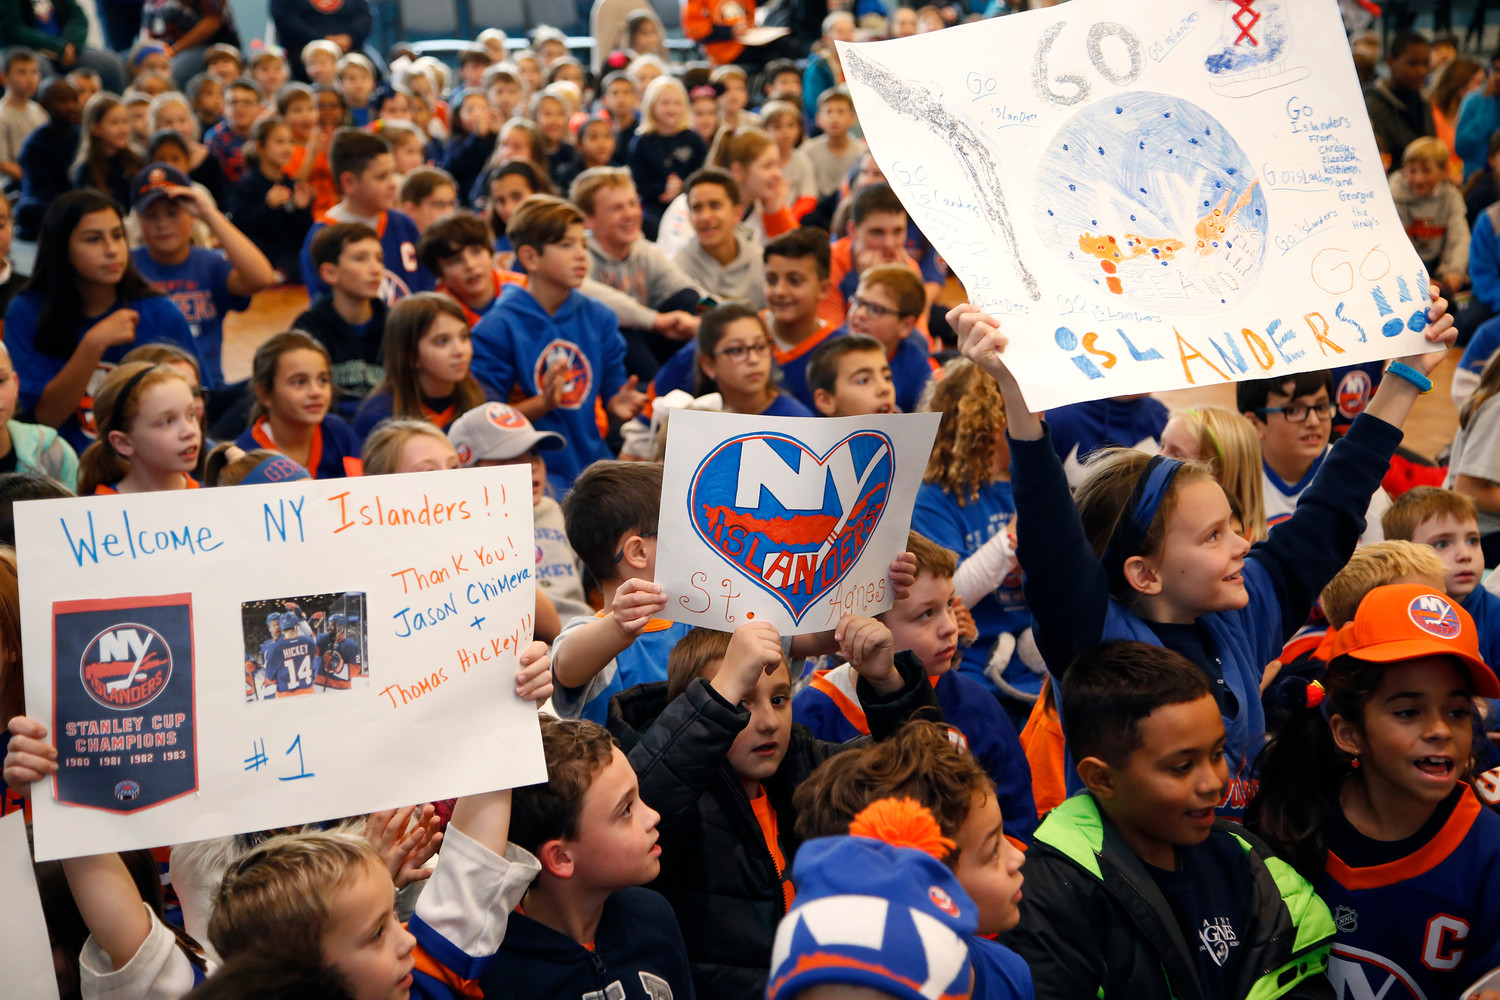 students at St. Agnes Cathedral School were excited to see players from the New York Islanders at their school.